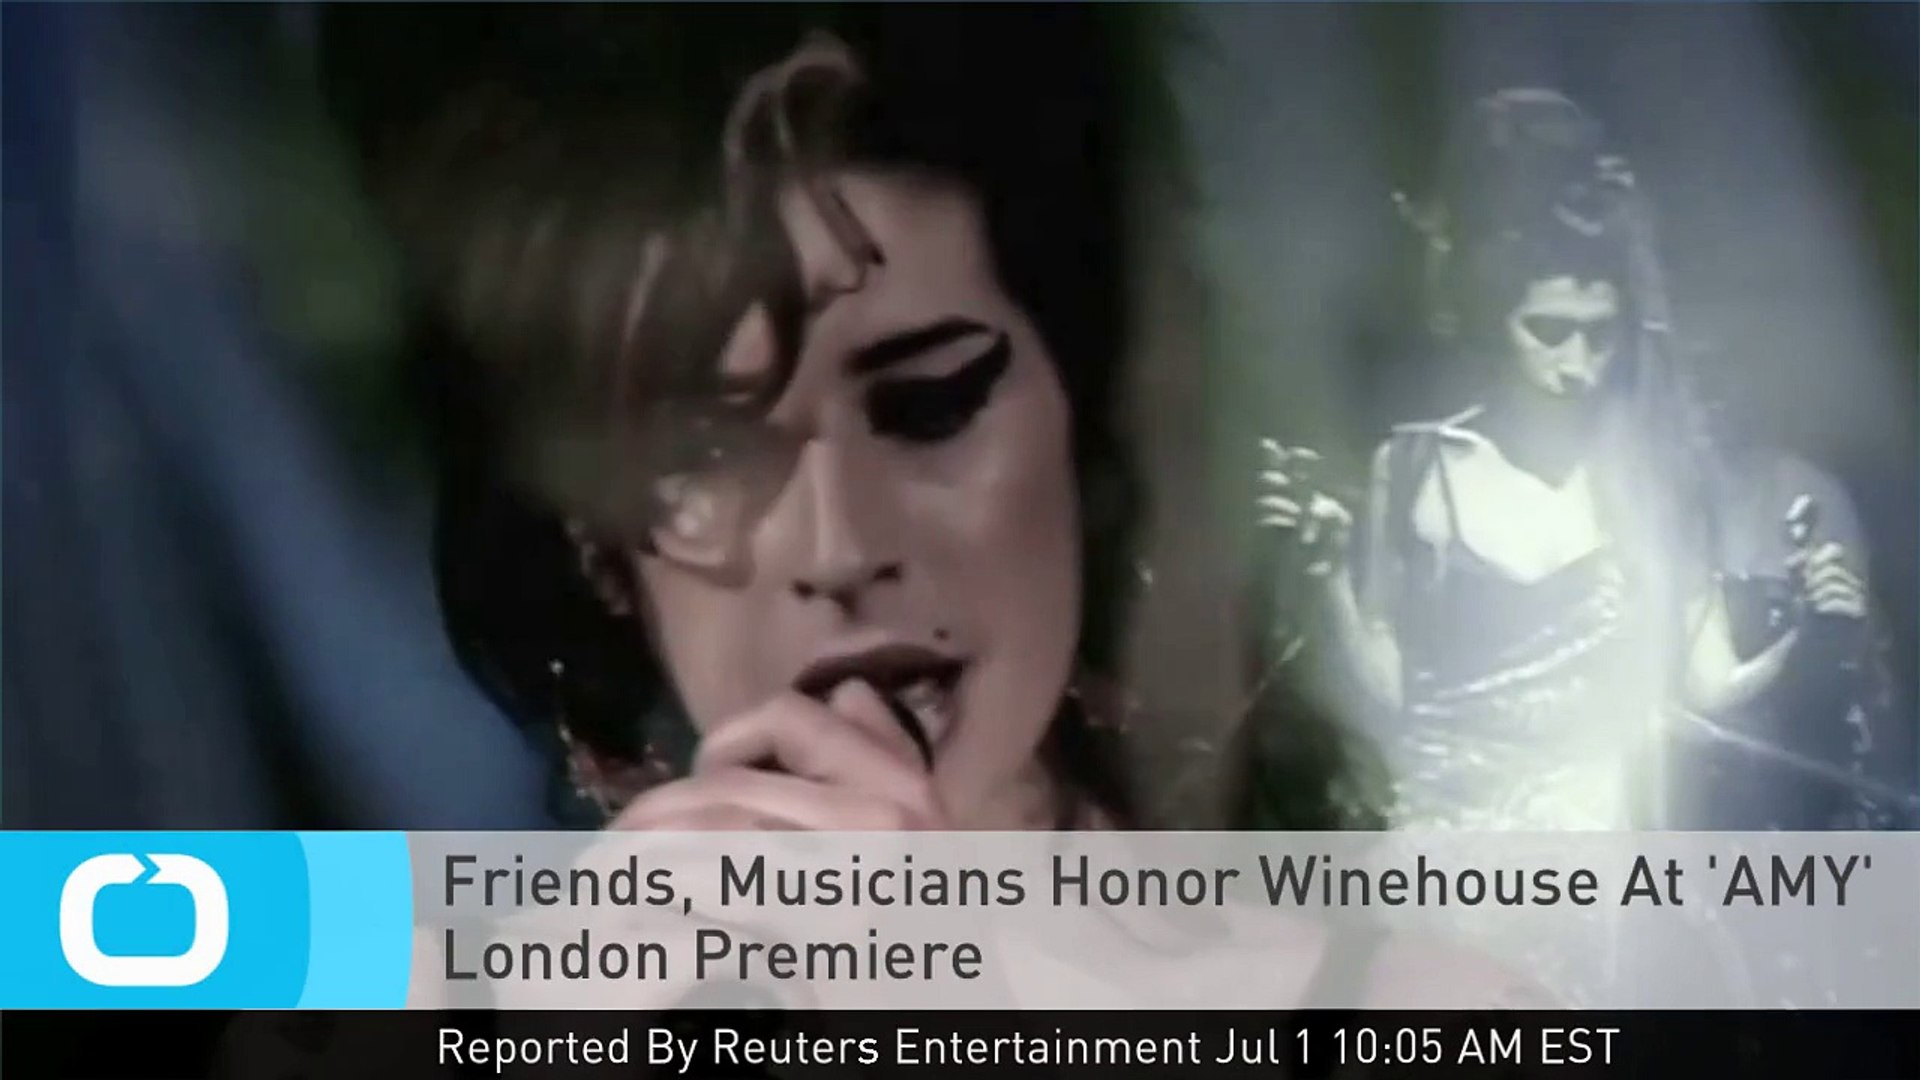 Friends, Musicians Honor Winehouse At 'AMY' London Premiere